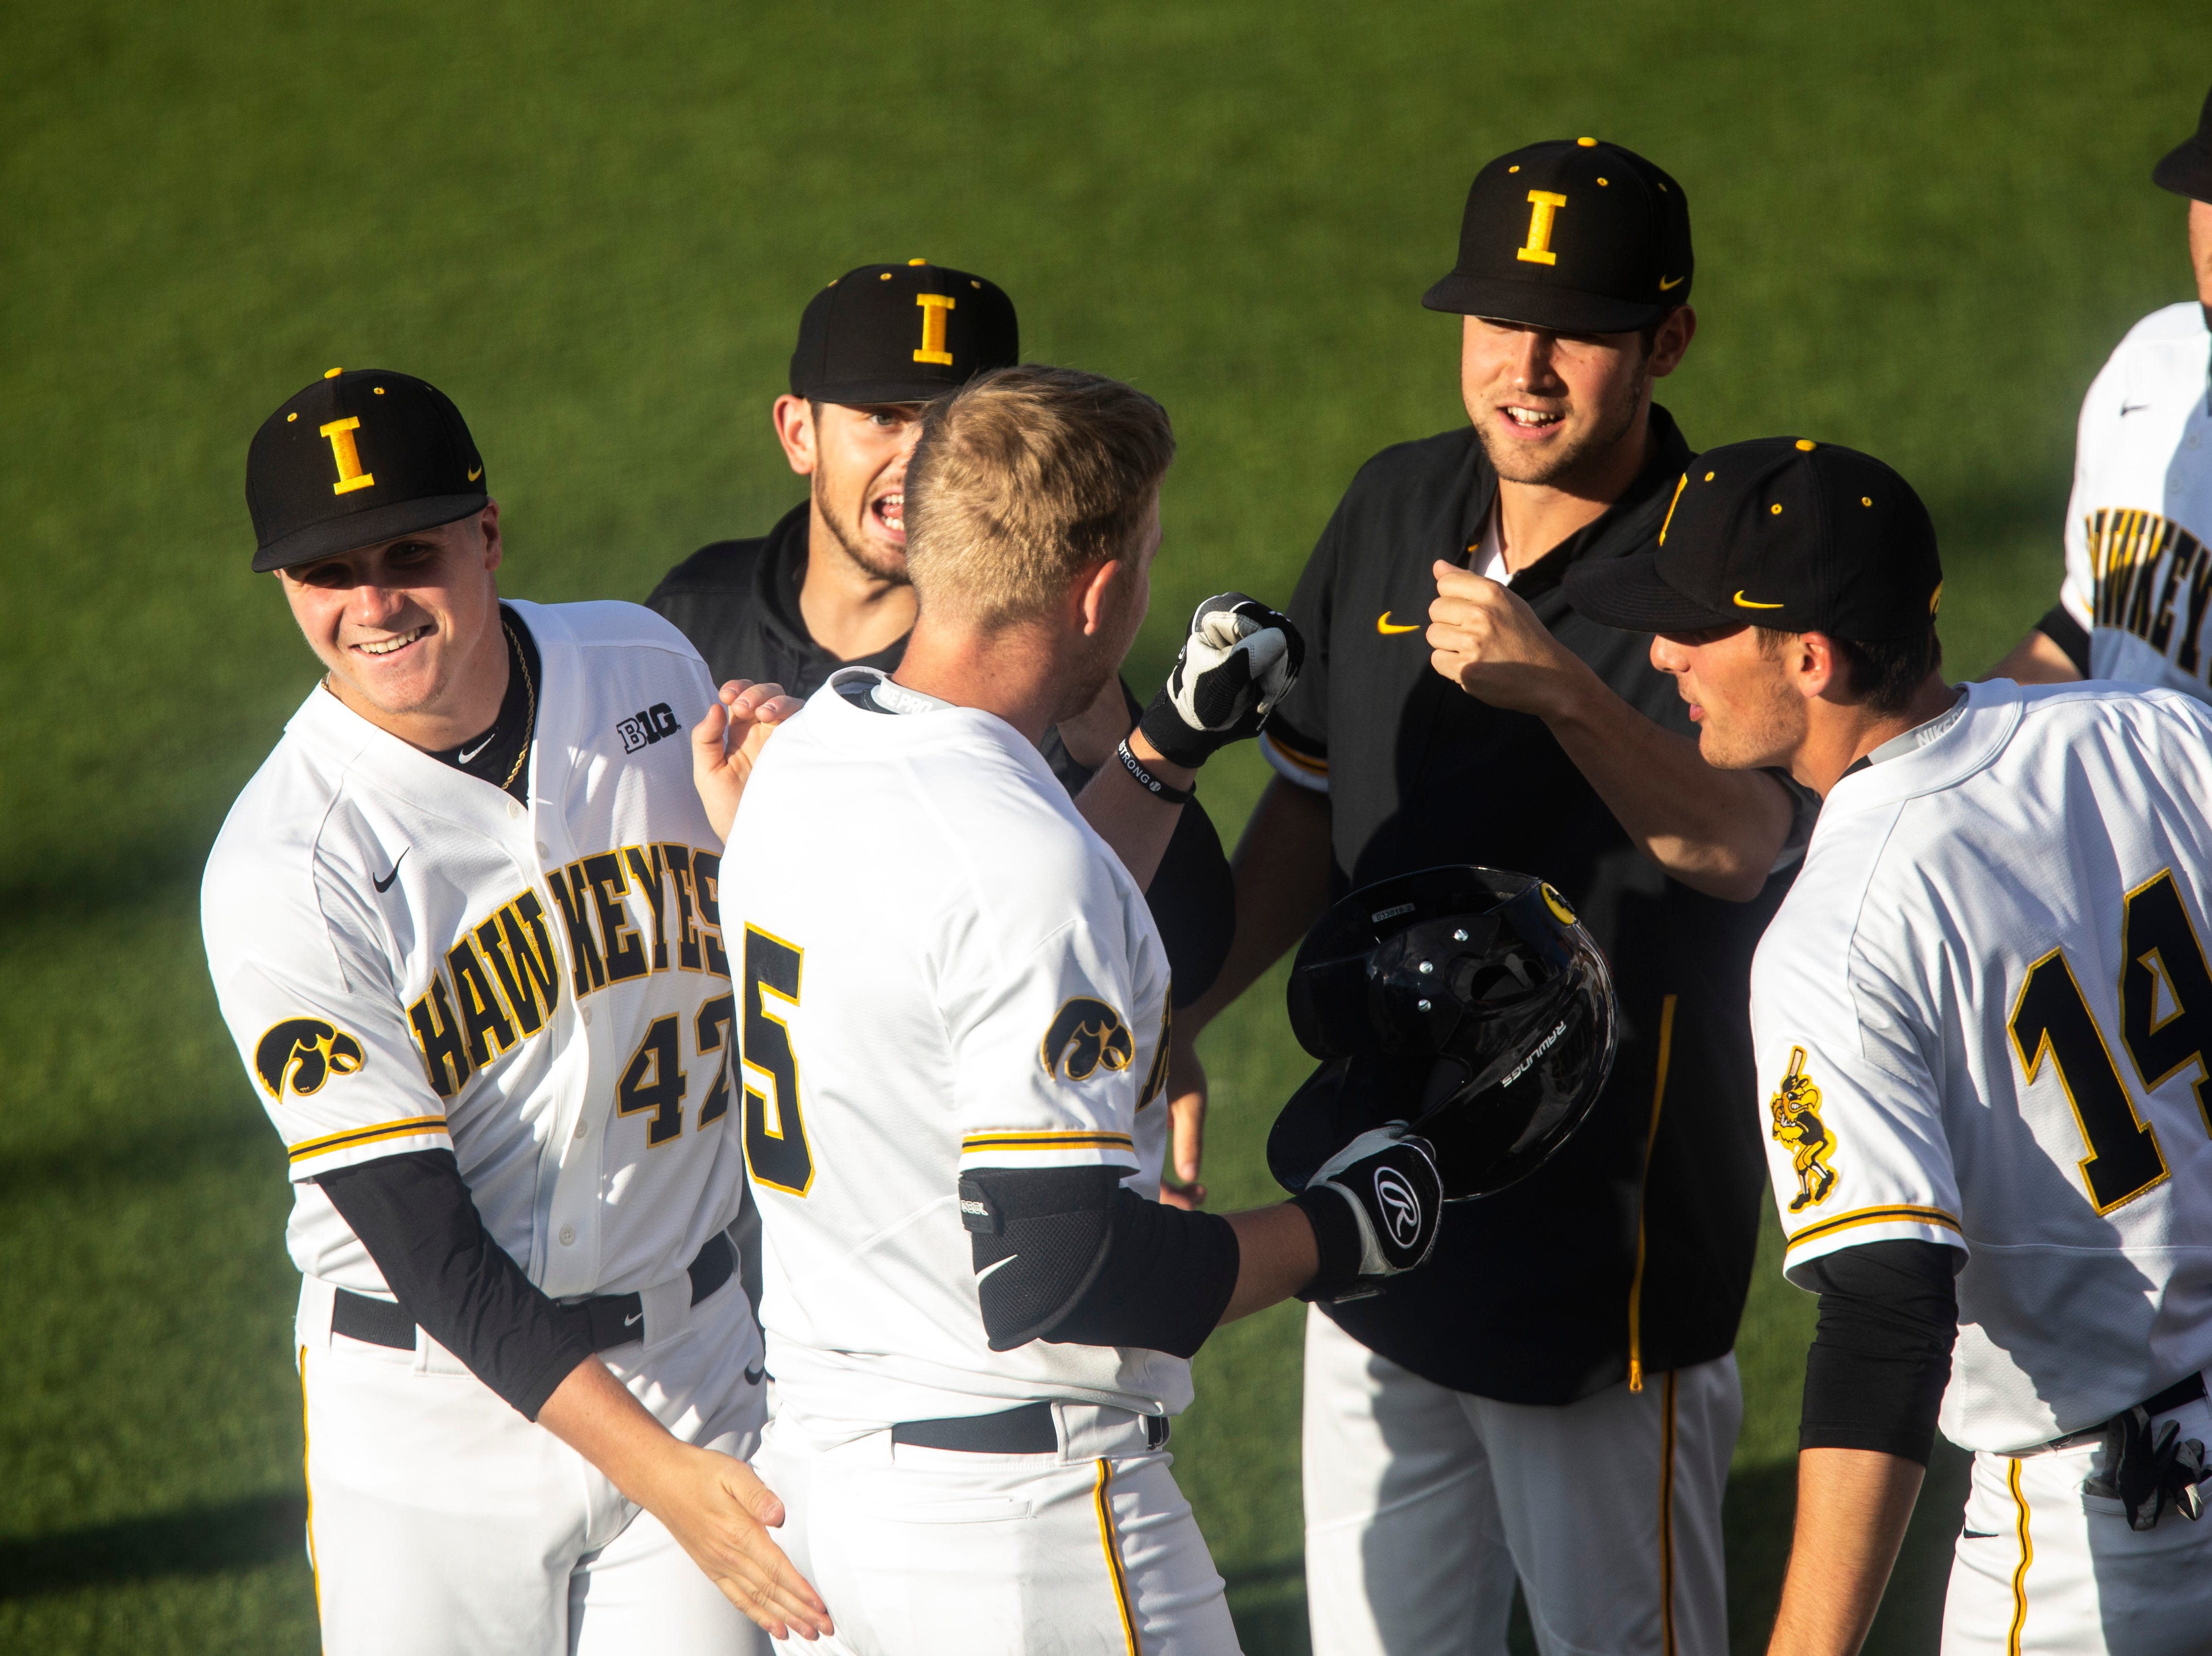 Iowa's Zeb Adreon (5) gets embraced by teammates after hitting a grand slam during a NCAA Big Ten Conference baseball game, Friday, May 10, 2019, at Duane Banks Field on the University of Iowa campus in Iowa City, Iowa.